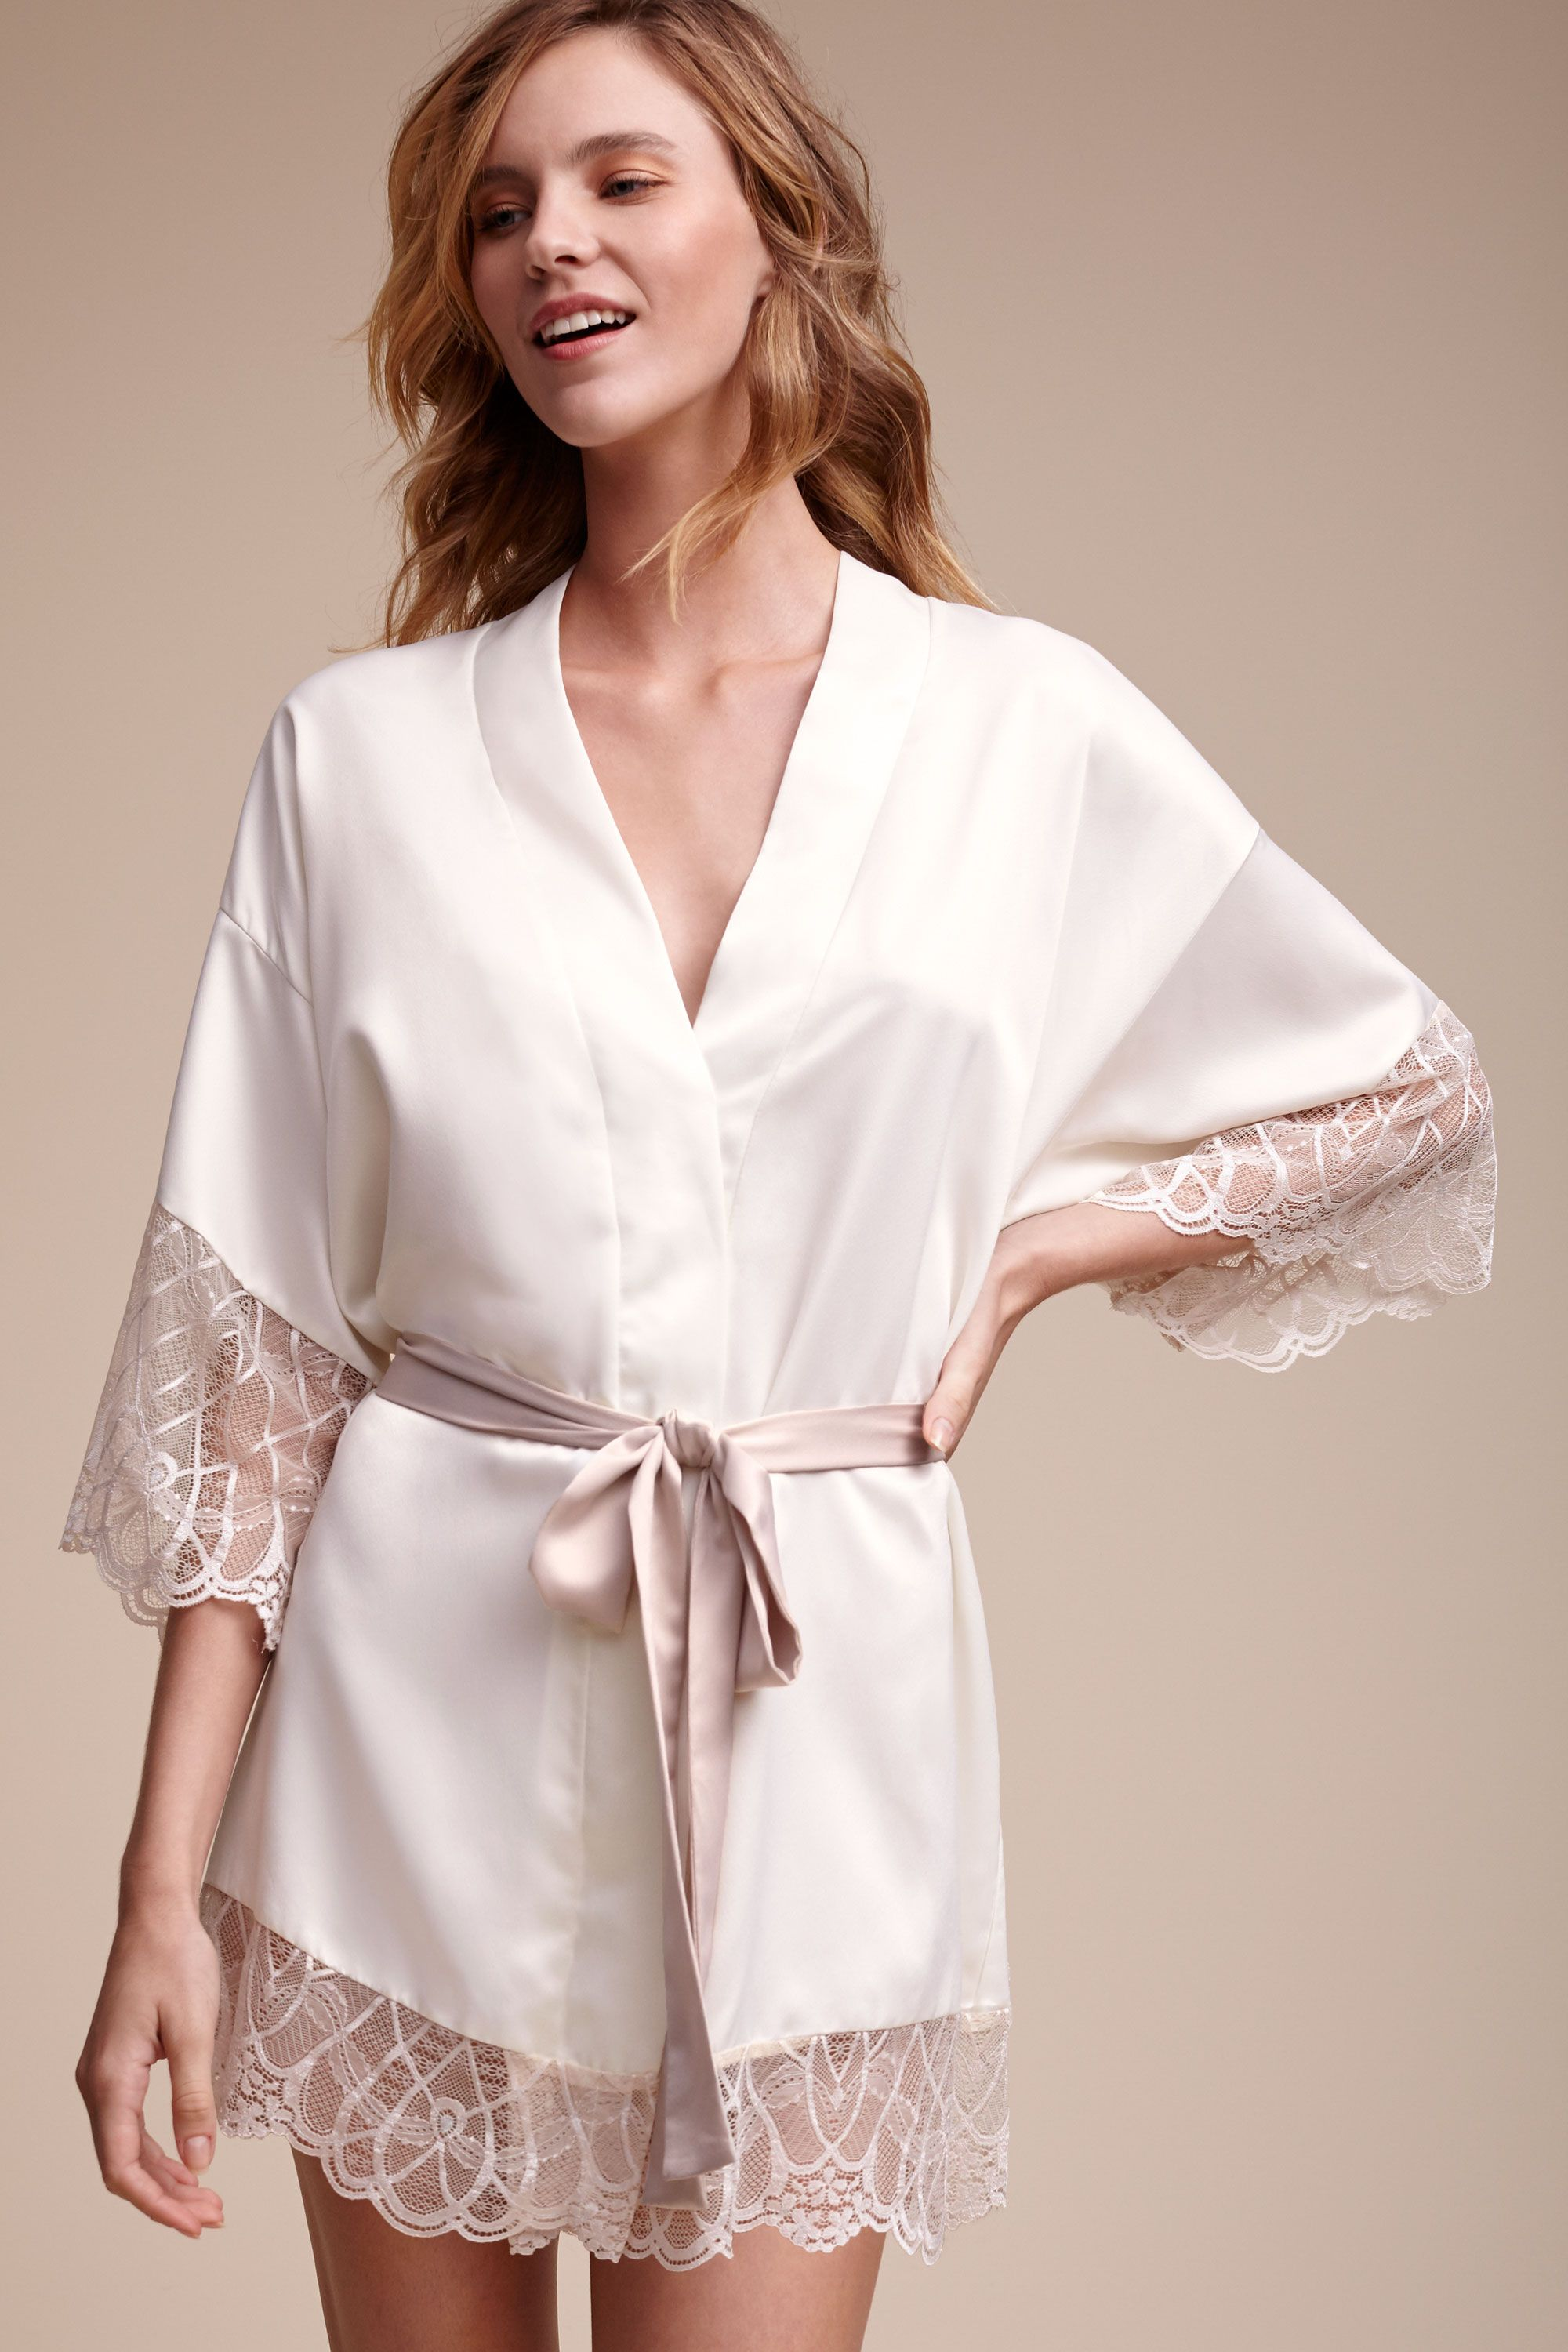 Wedding Bride Robe cosette kimono robe in bride bridal lingerie robes bhldn ivory bhldn